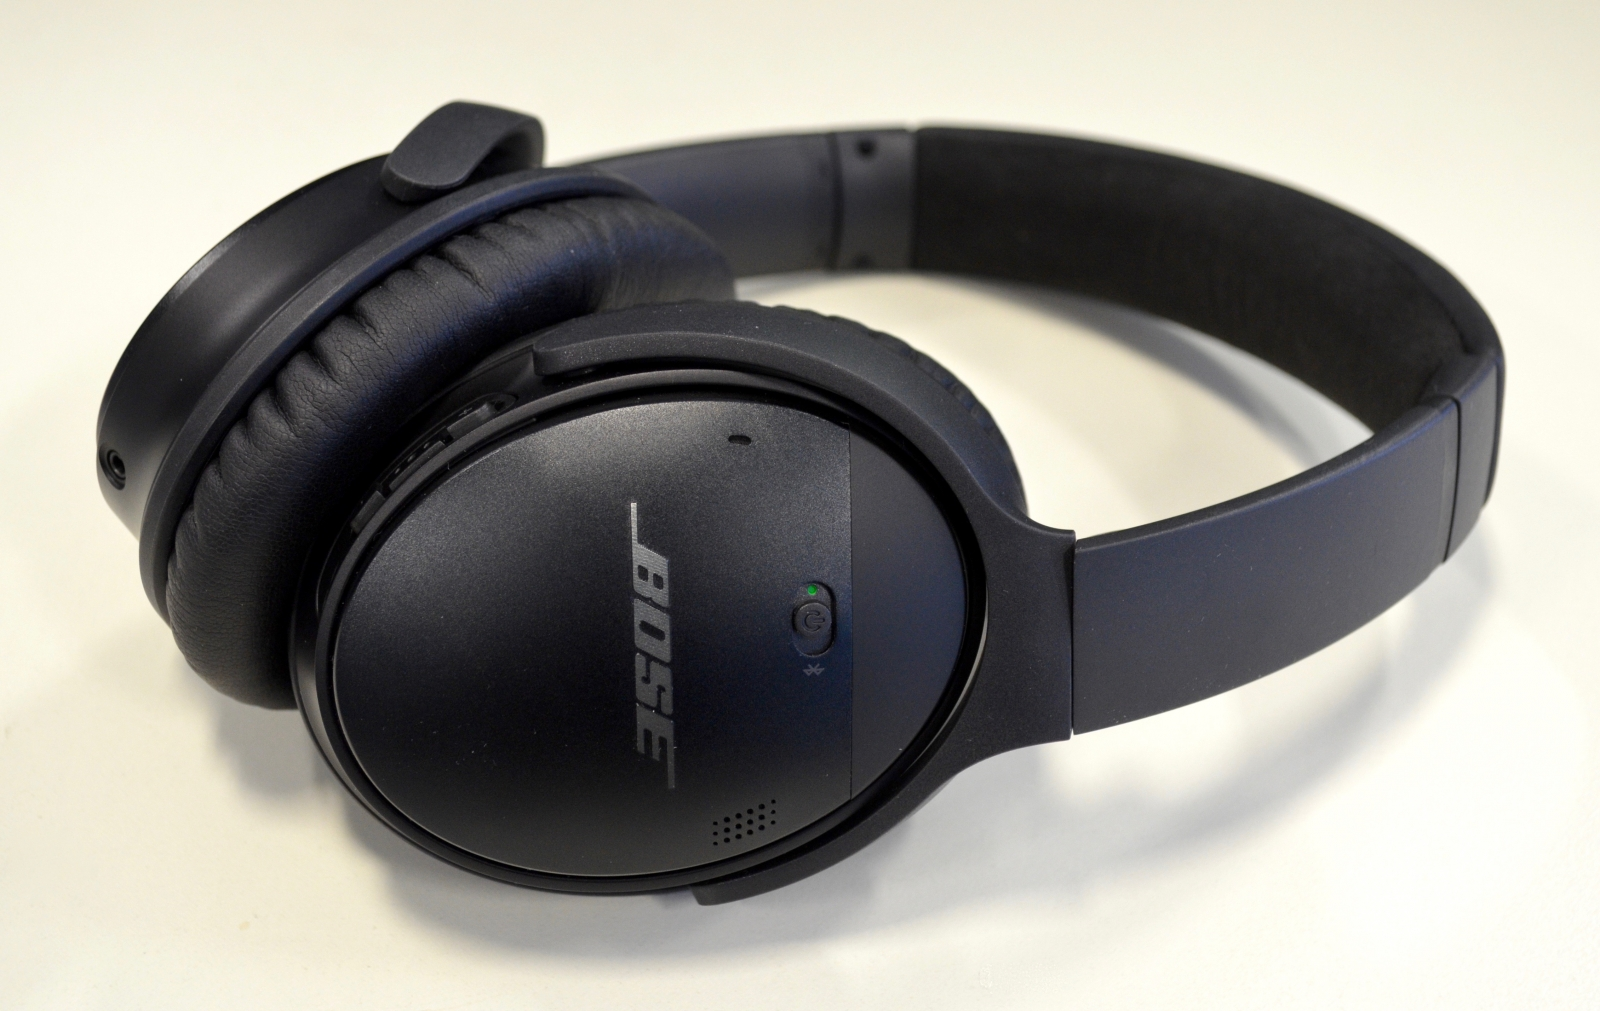 bose noise cancelling headphones 35. bose quietcomfort 35 review: the wireless, noise-cancelling headphones you\u0027ll never want to take off noise cancelling 5